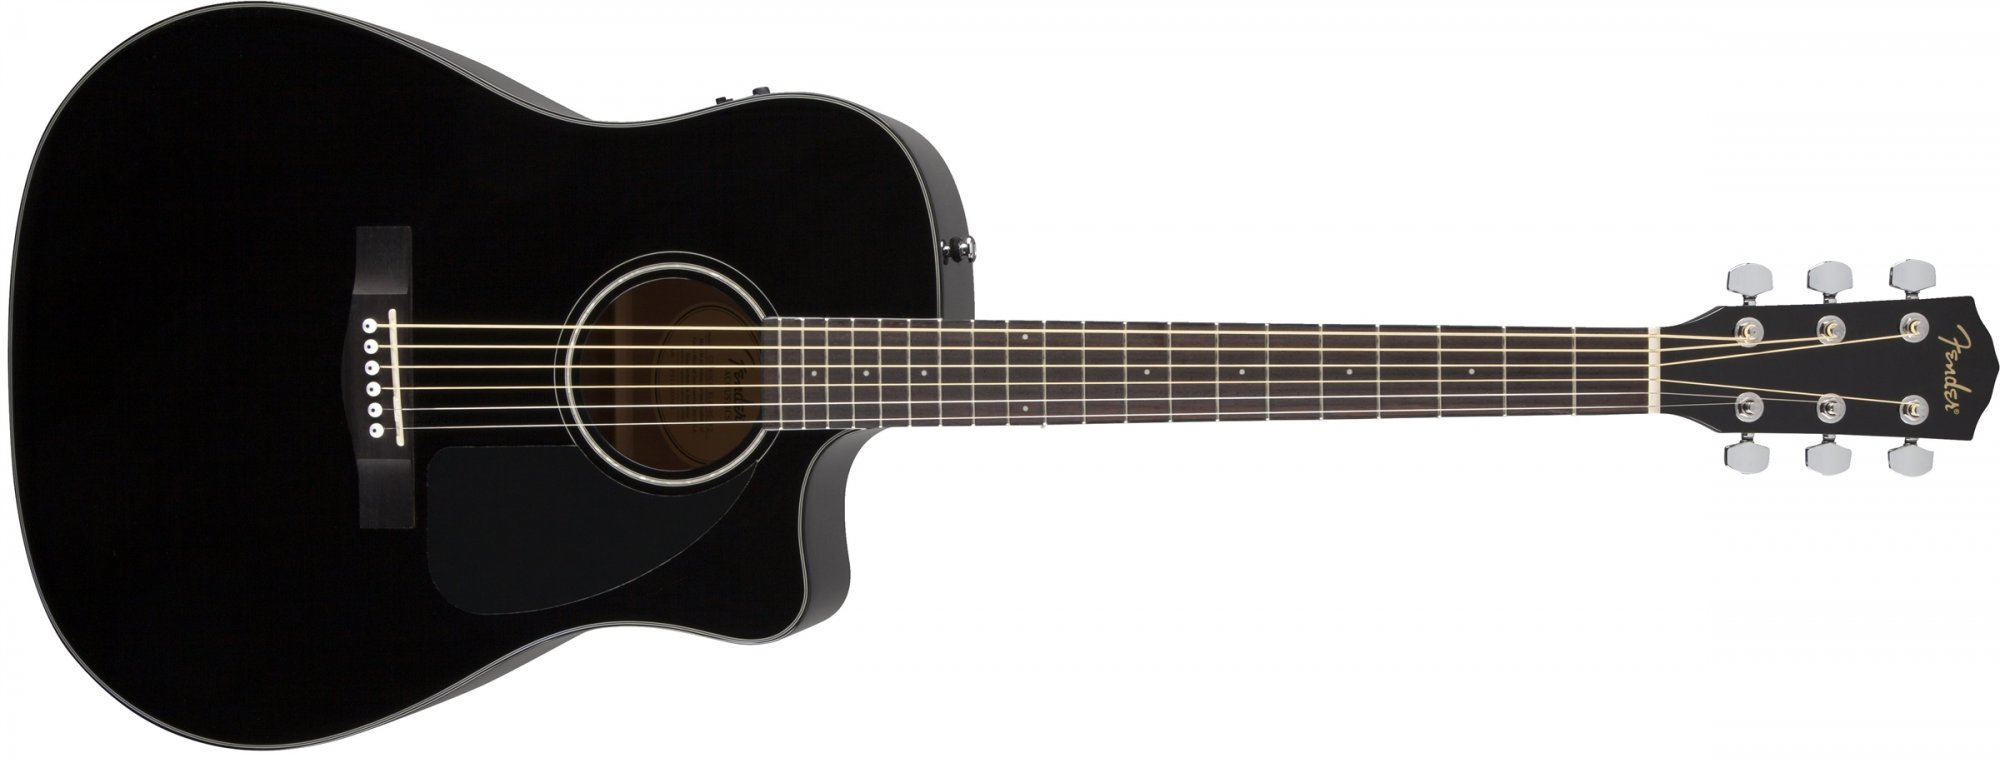 fender cd 60ce acoustic electric guitar black with hard case 717669961756. Black Bedroom Furniture Sets. Home Design Ideas